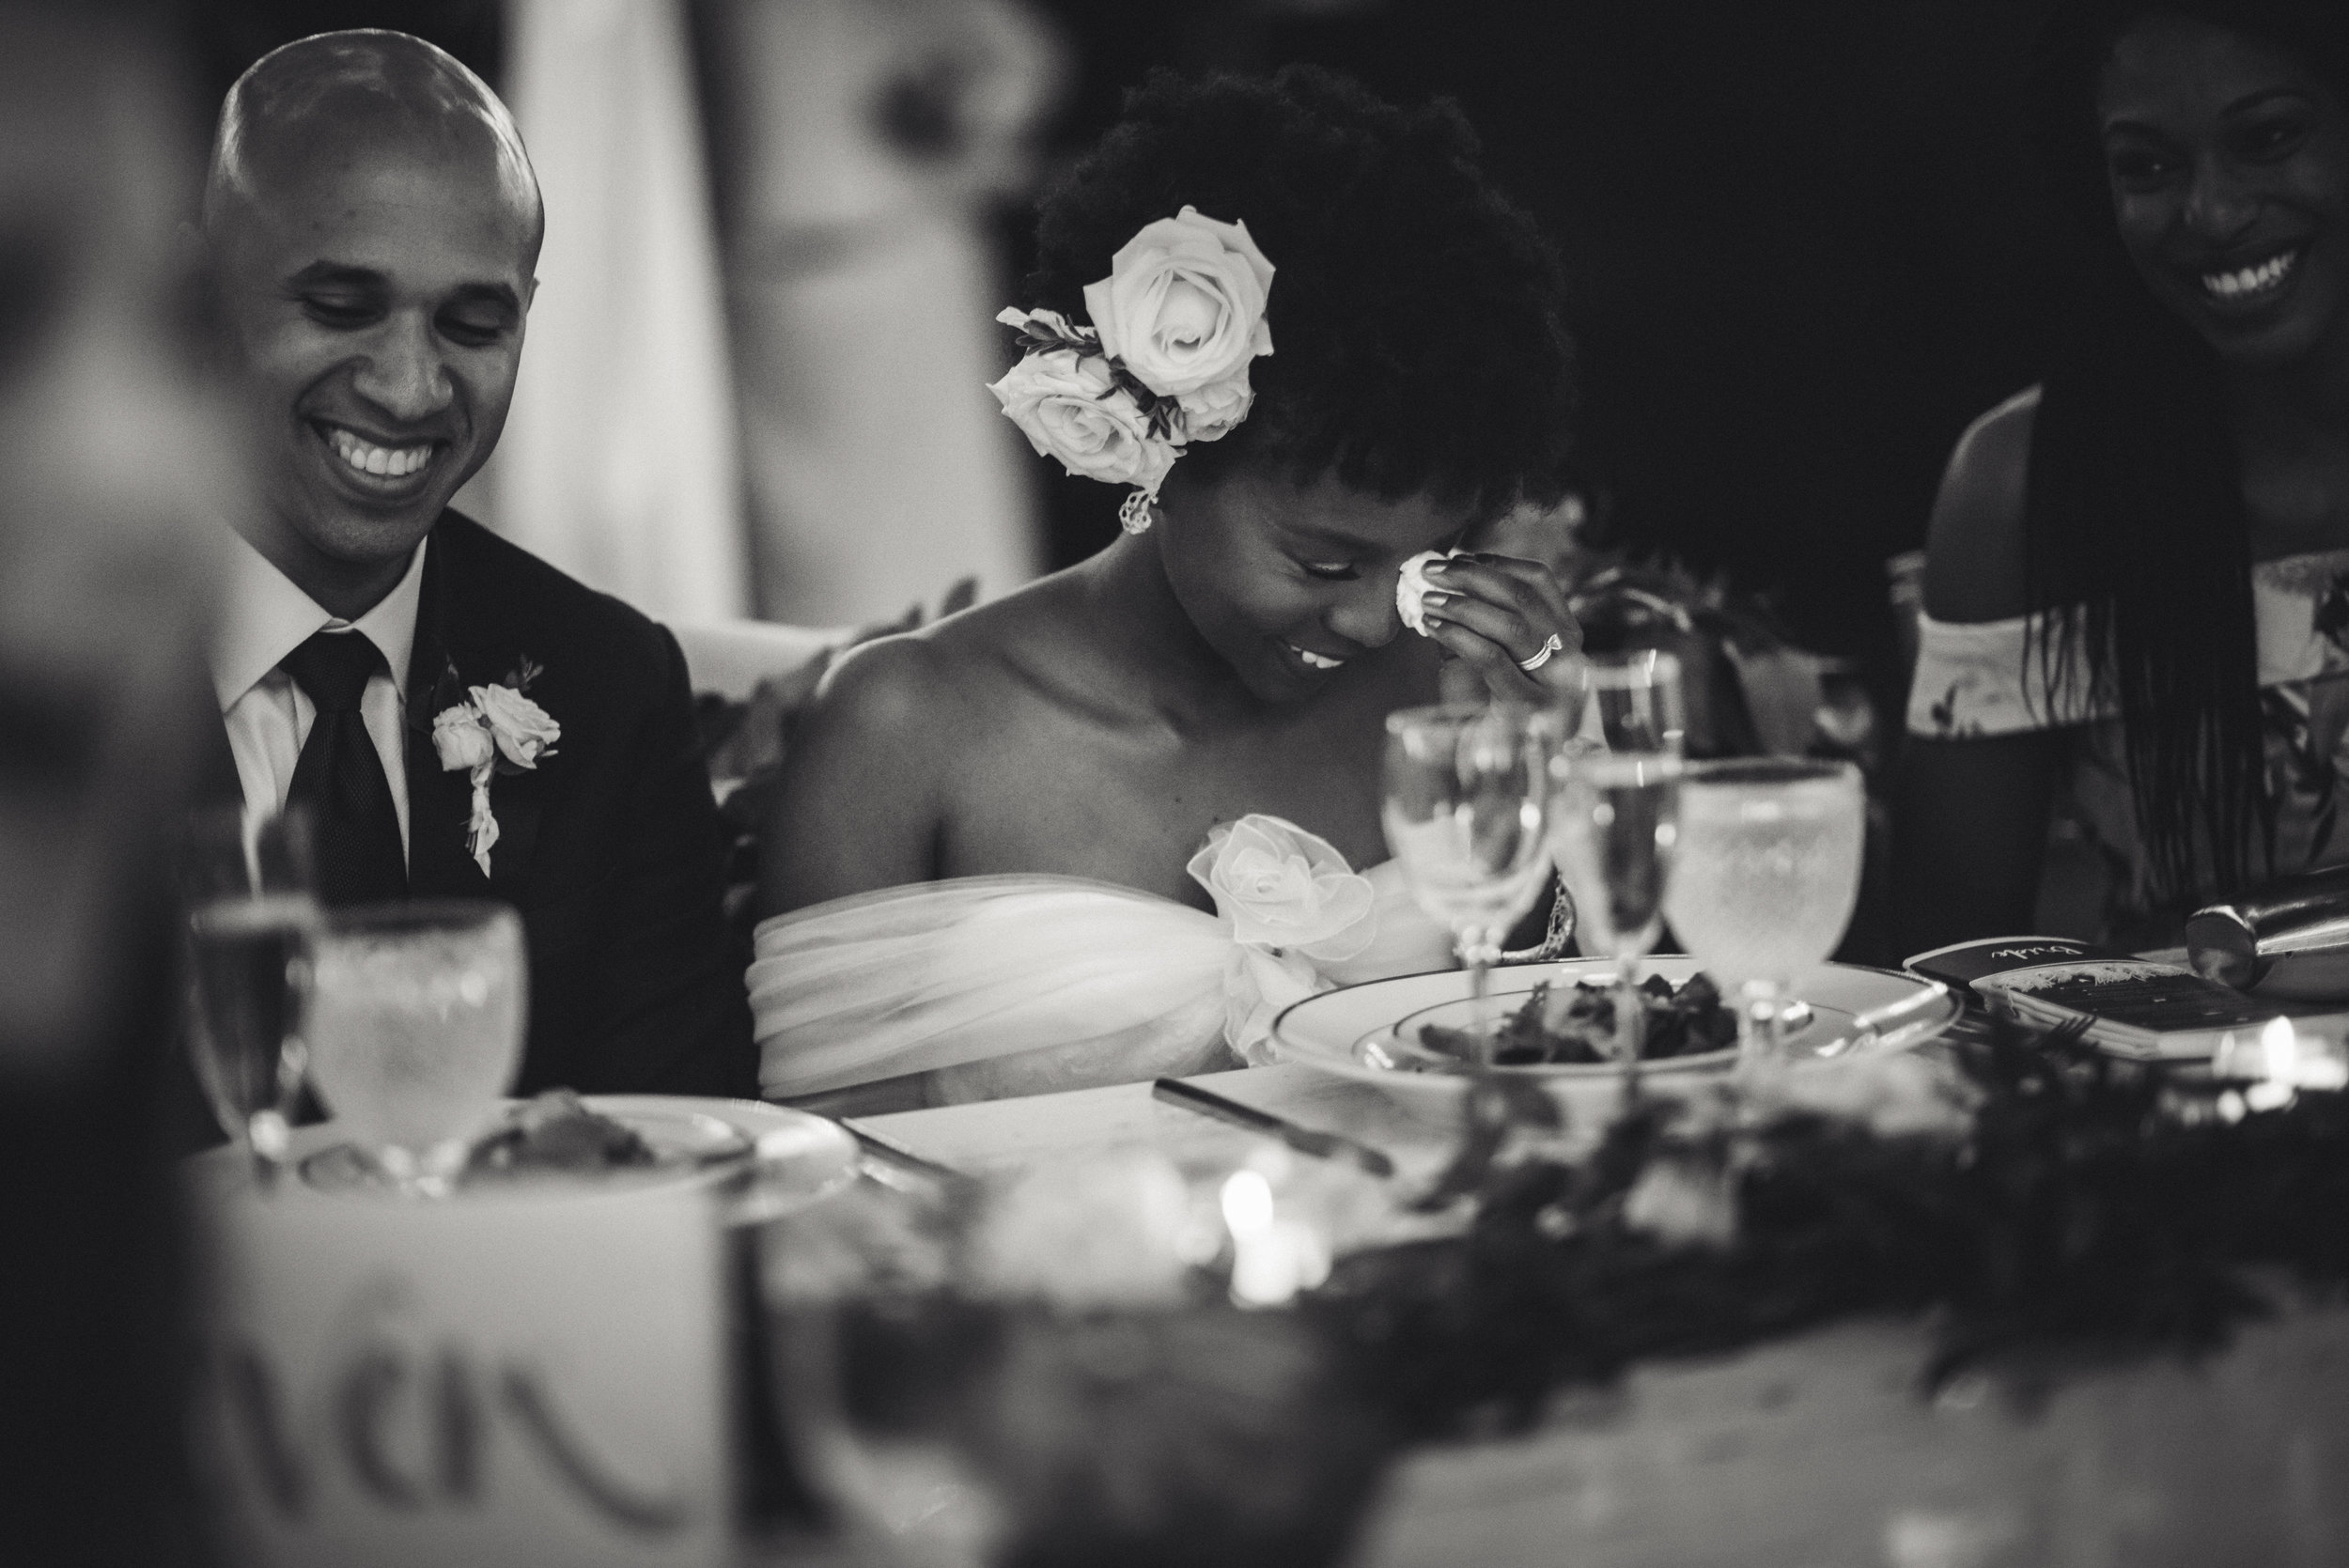 GLENVIEW MANSION WEDDING - INTIMATE WEDDING PHOTOGRAPHER - TWOTWENTY by CHI-CHI AGBIM-331.jpg